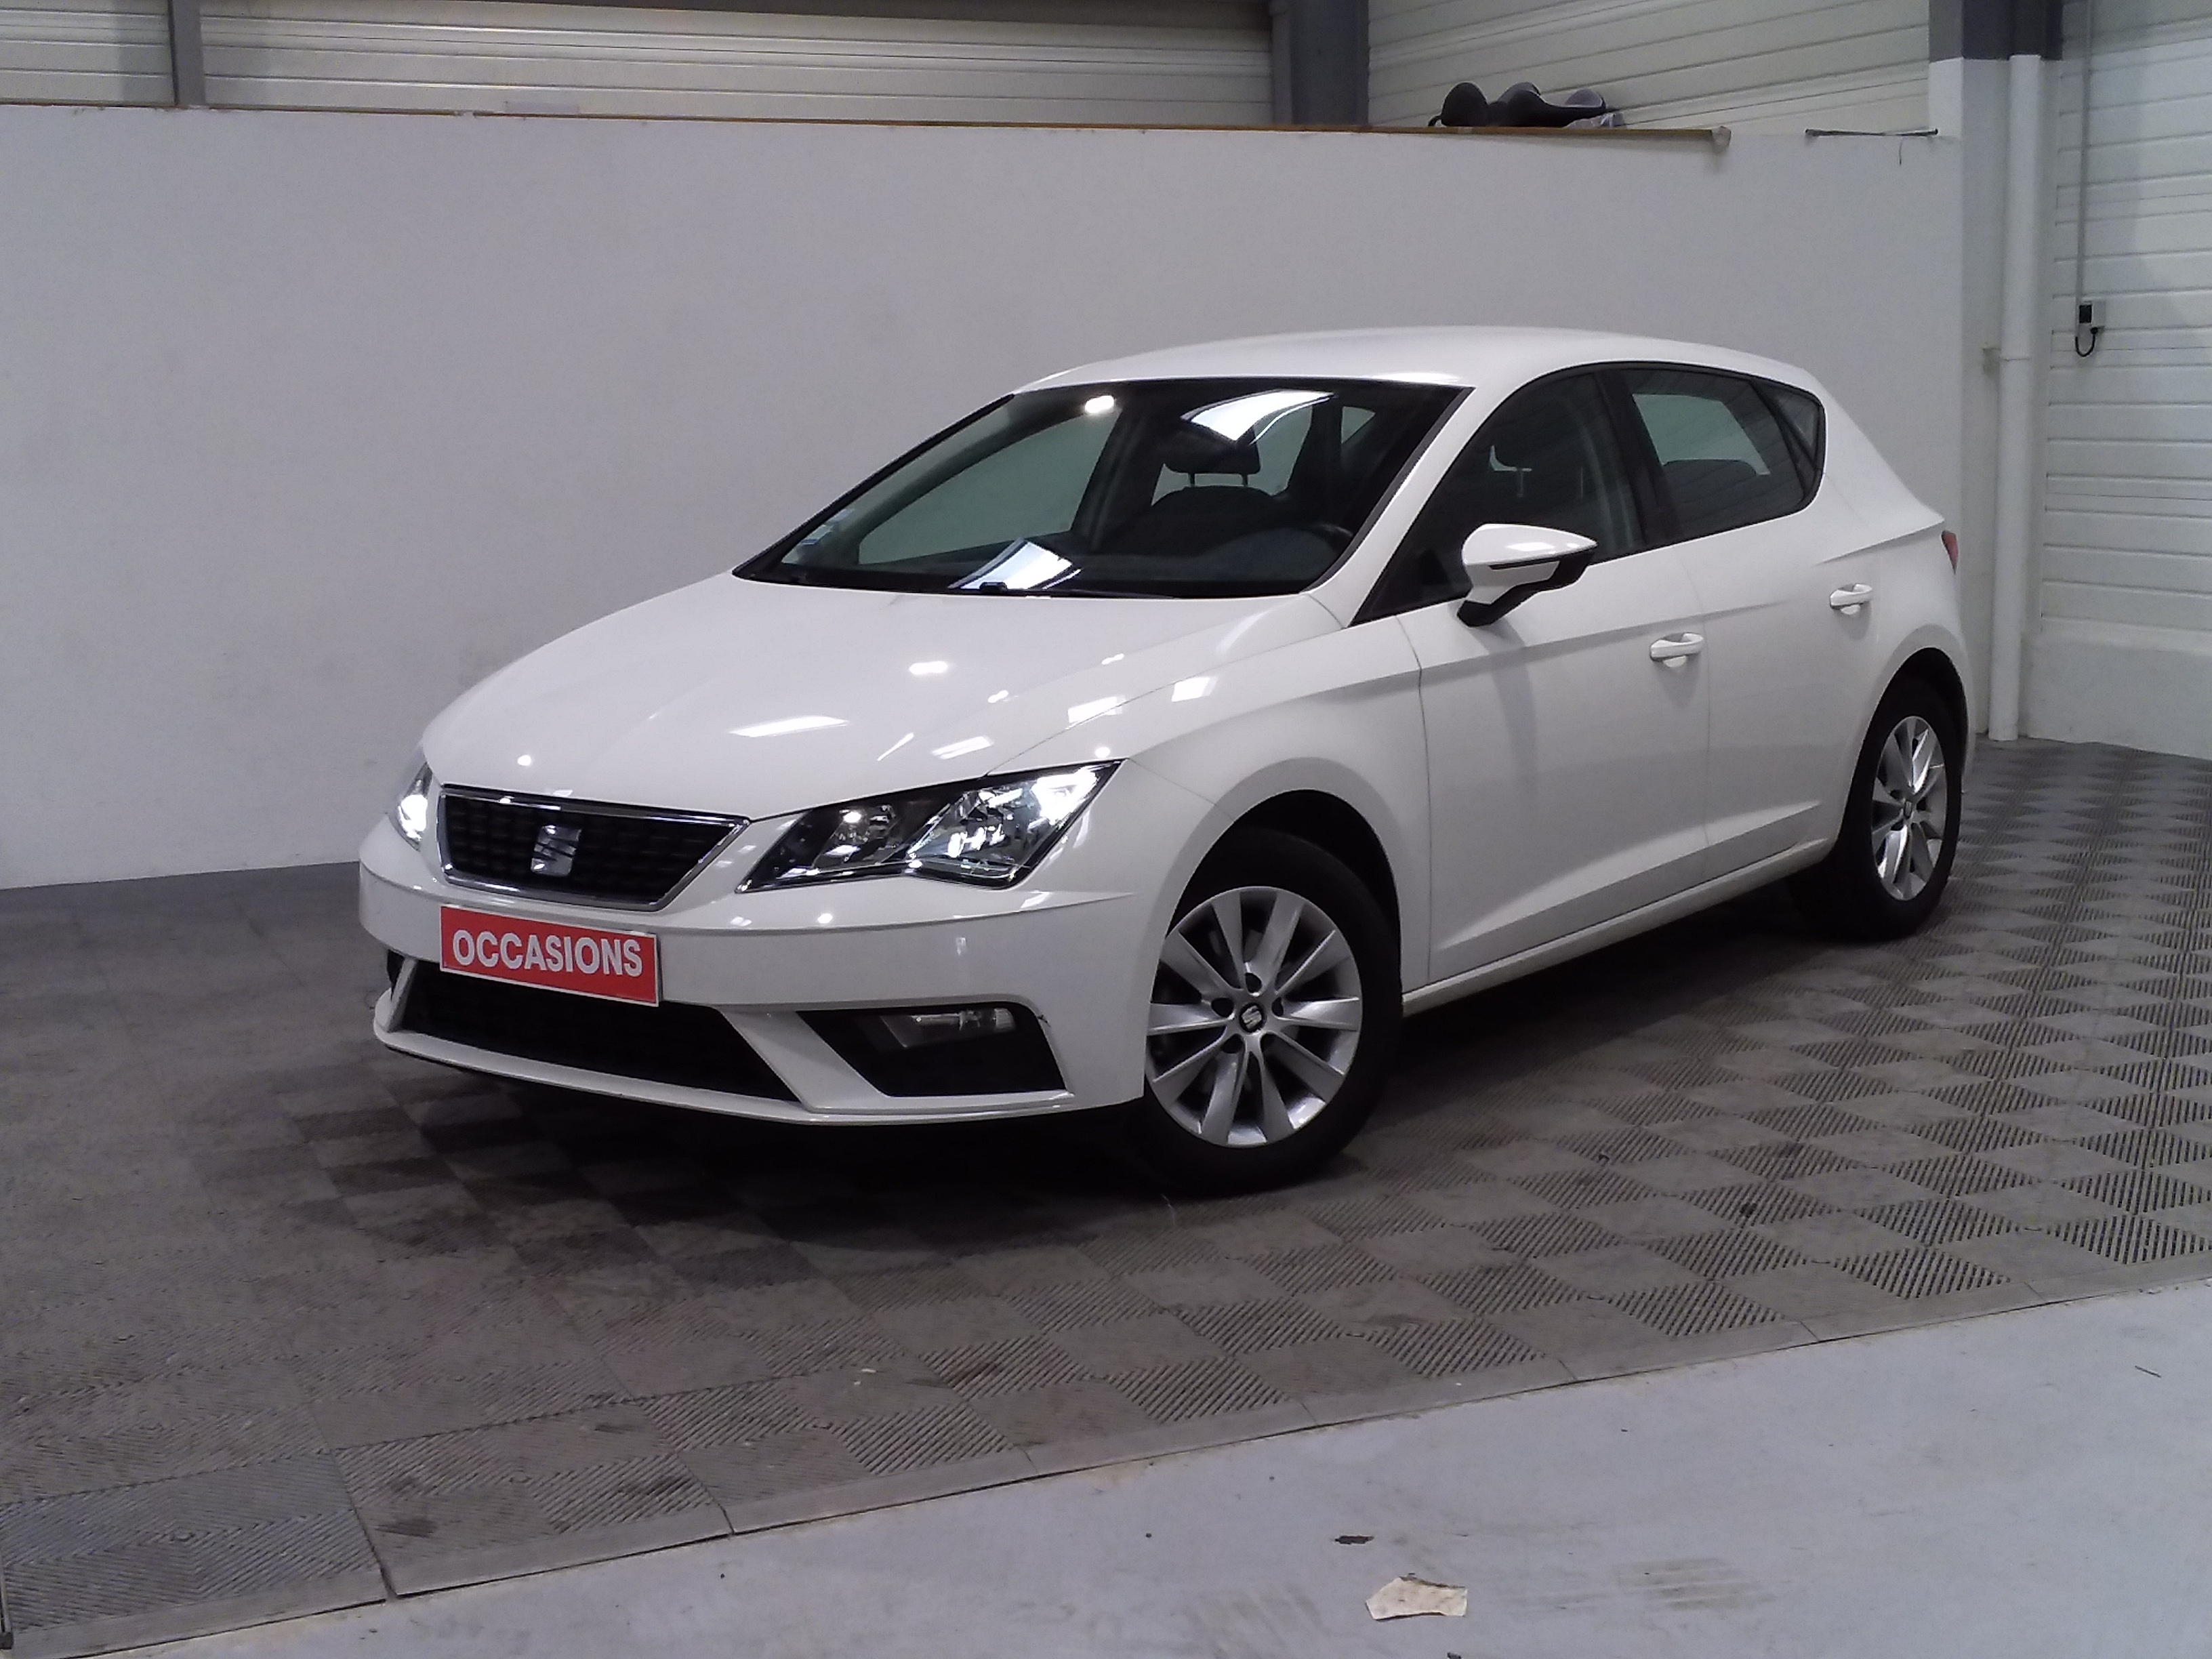 SEAT LEON 1.6 TDI 115 Start/Stop Reference d'occasion